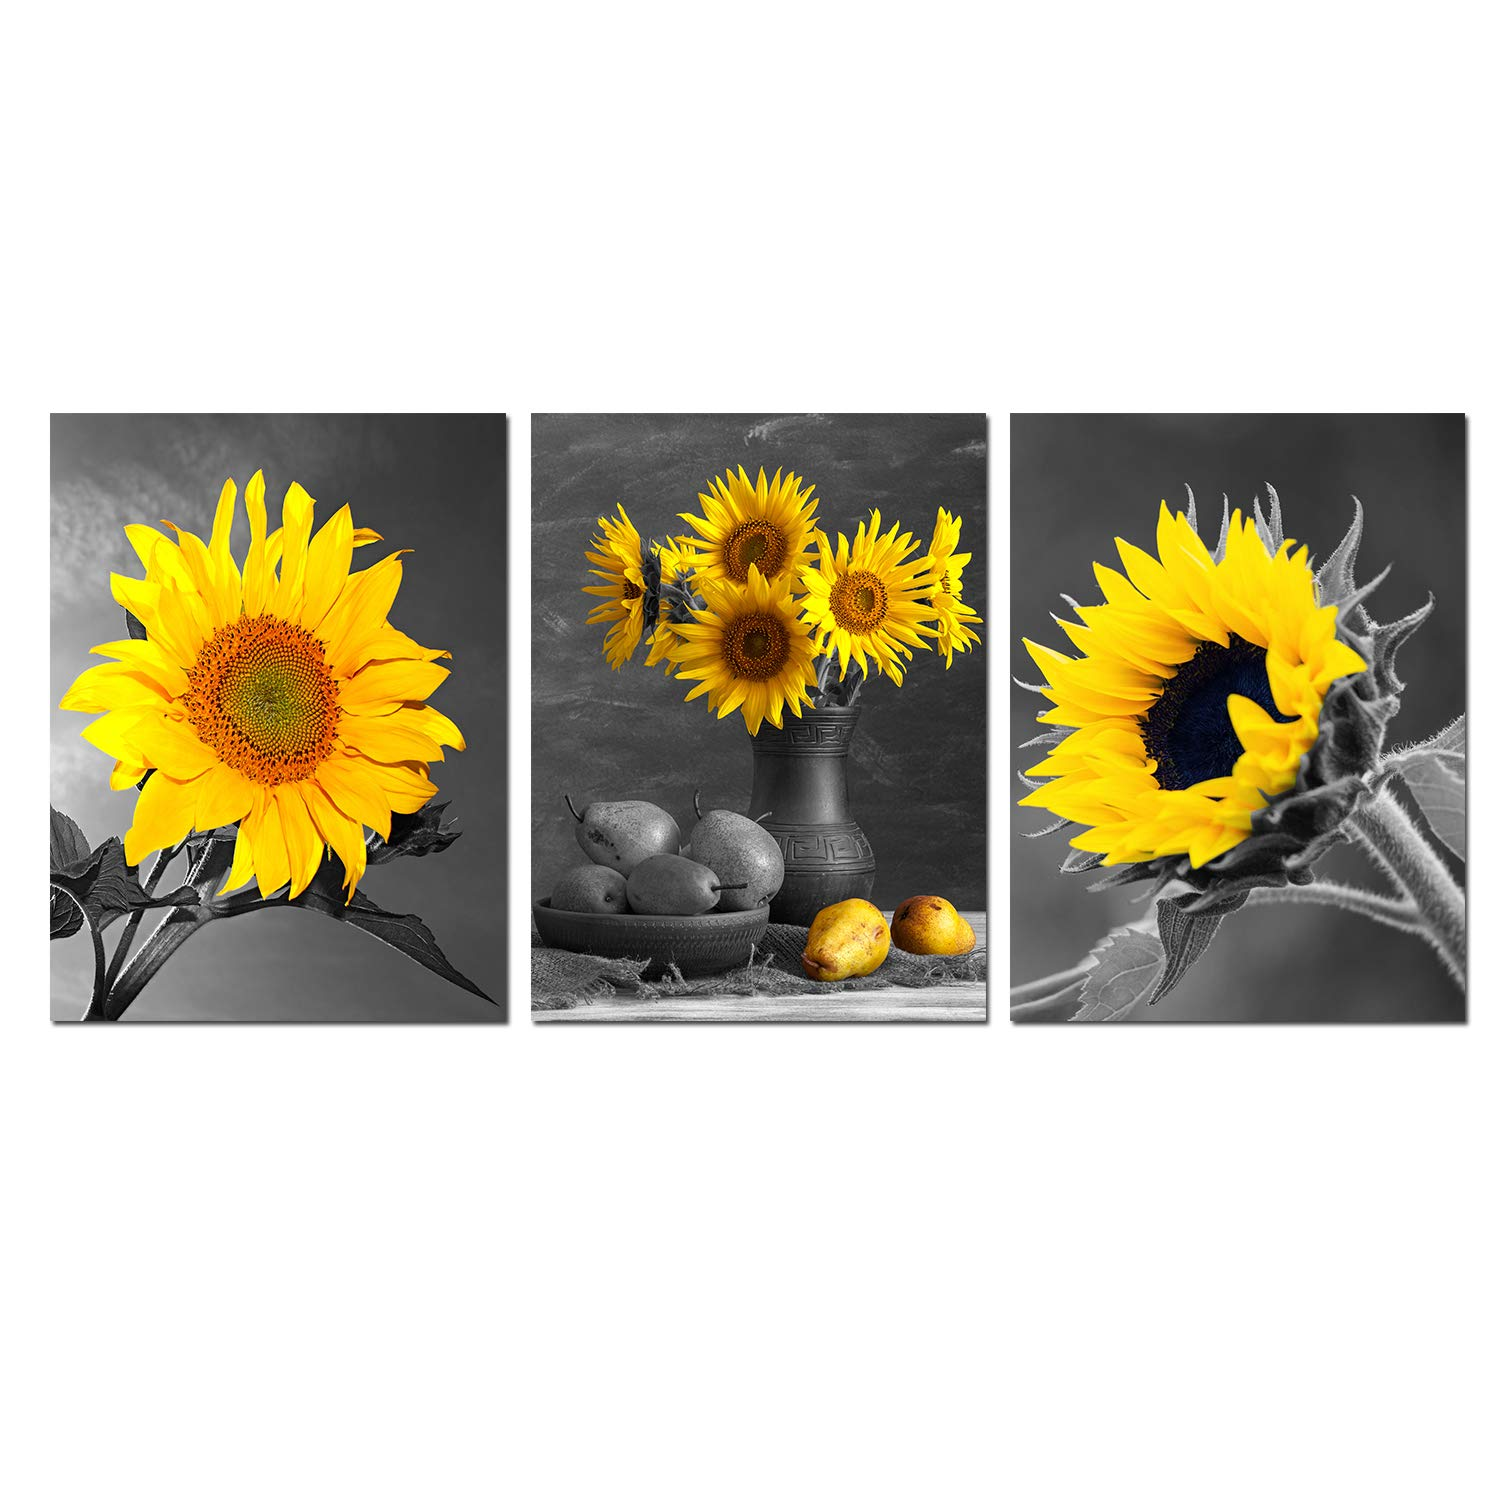 Sunflower Wall Art Canvas Painting Bloosom Flowers Black White Yellow Pictures Photos 3 Panels 12x16inch Floral Posters Kitchen Decor Giclee Prints Living Room Decoration Bedroom Artwork Unframed Buy Online In Bahamas